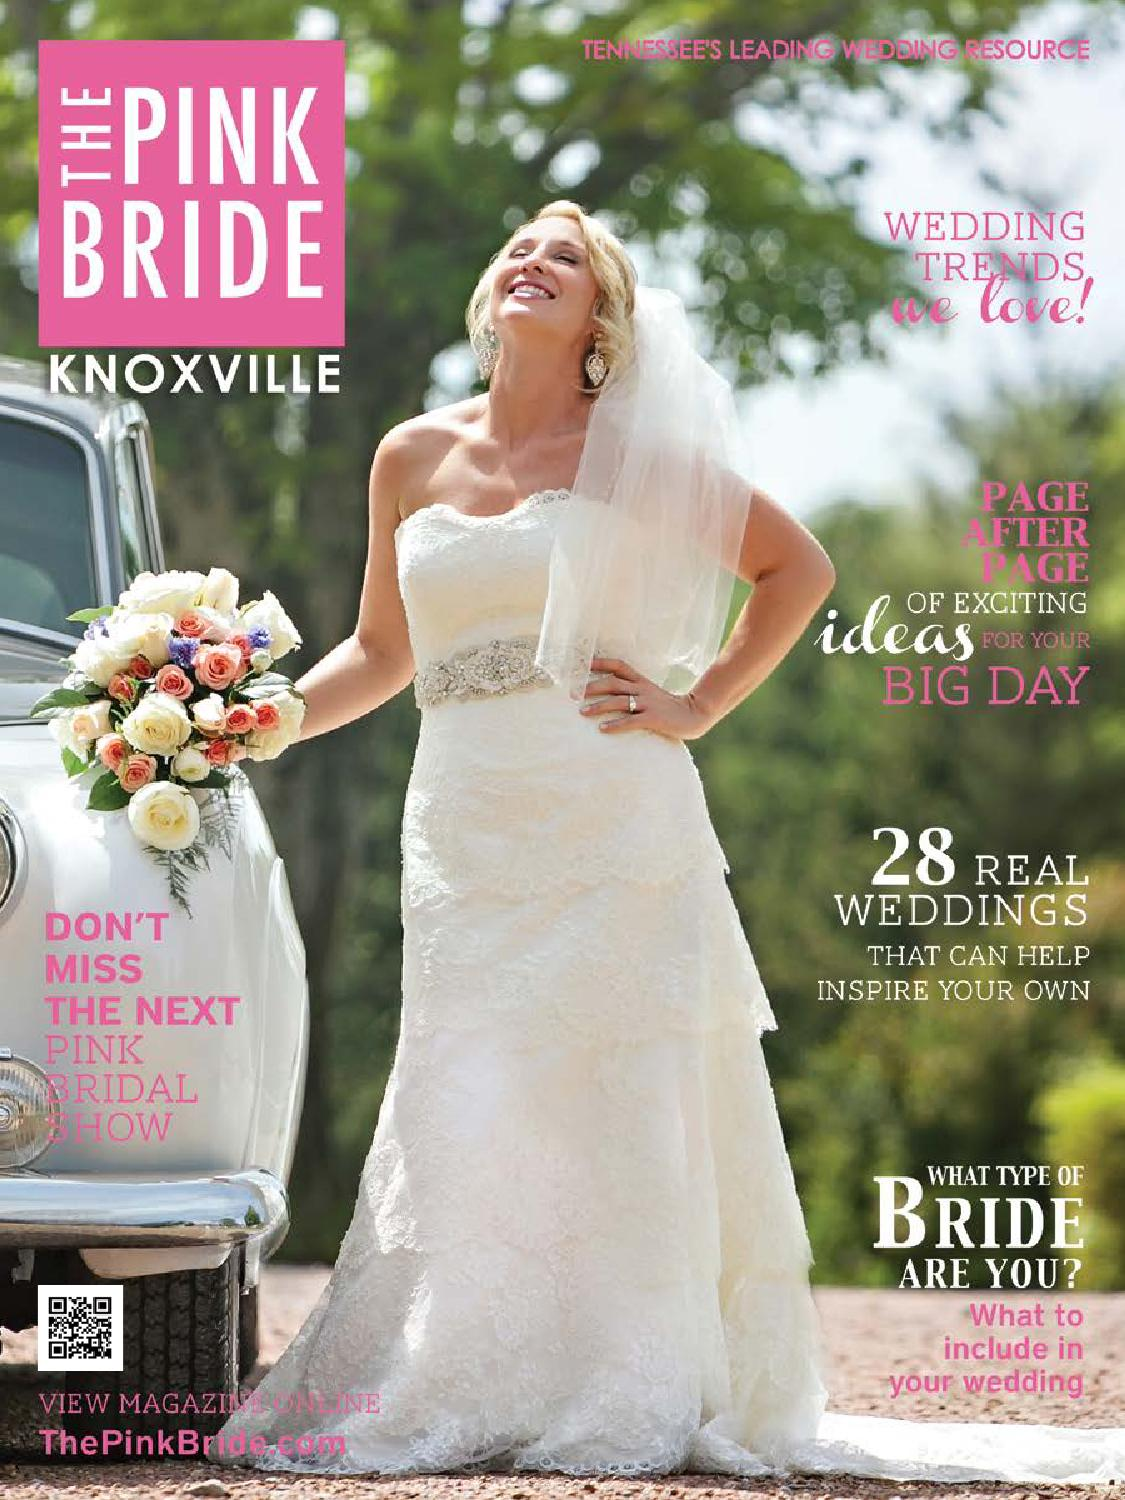 THE PINK BRIDE MAGAZINE: KATELYN & DENNEY'S BRIGHT SUMMER WEDDING